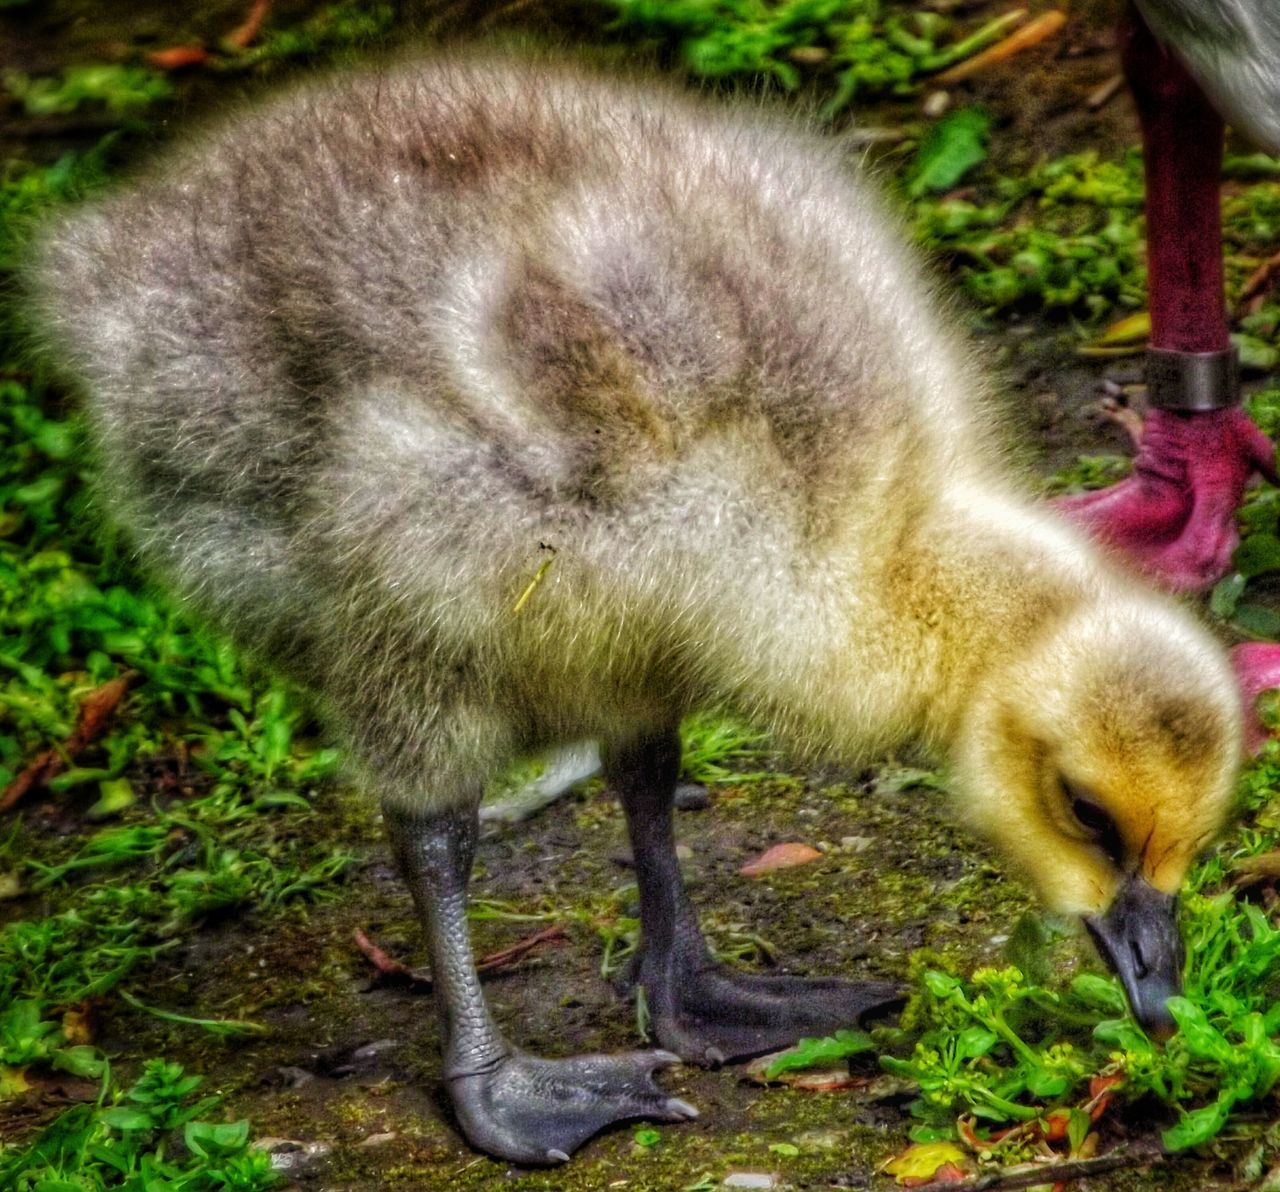 animal themes, one animal, animals in the wild, animal wildlife, no people, day, outdoors, young animal, grass, full length, standing, nature, mammal, close-up, bird